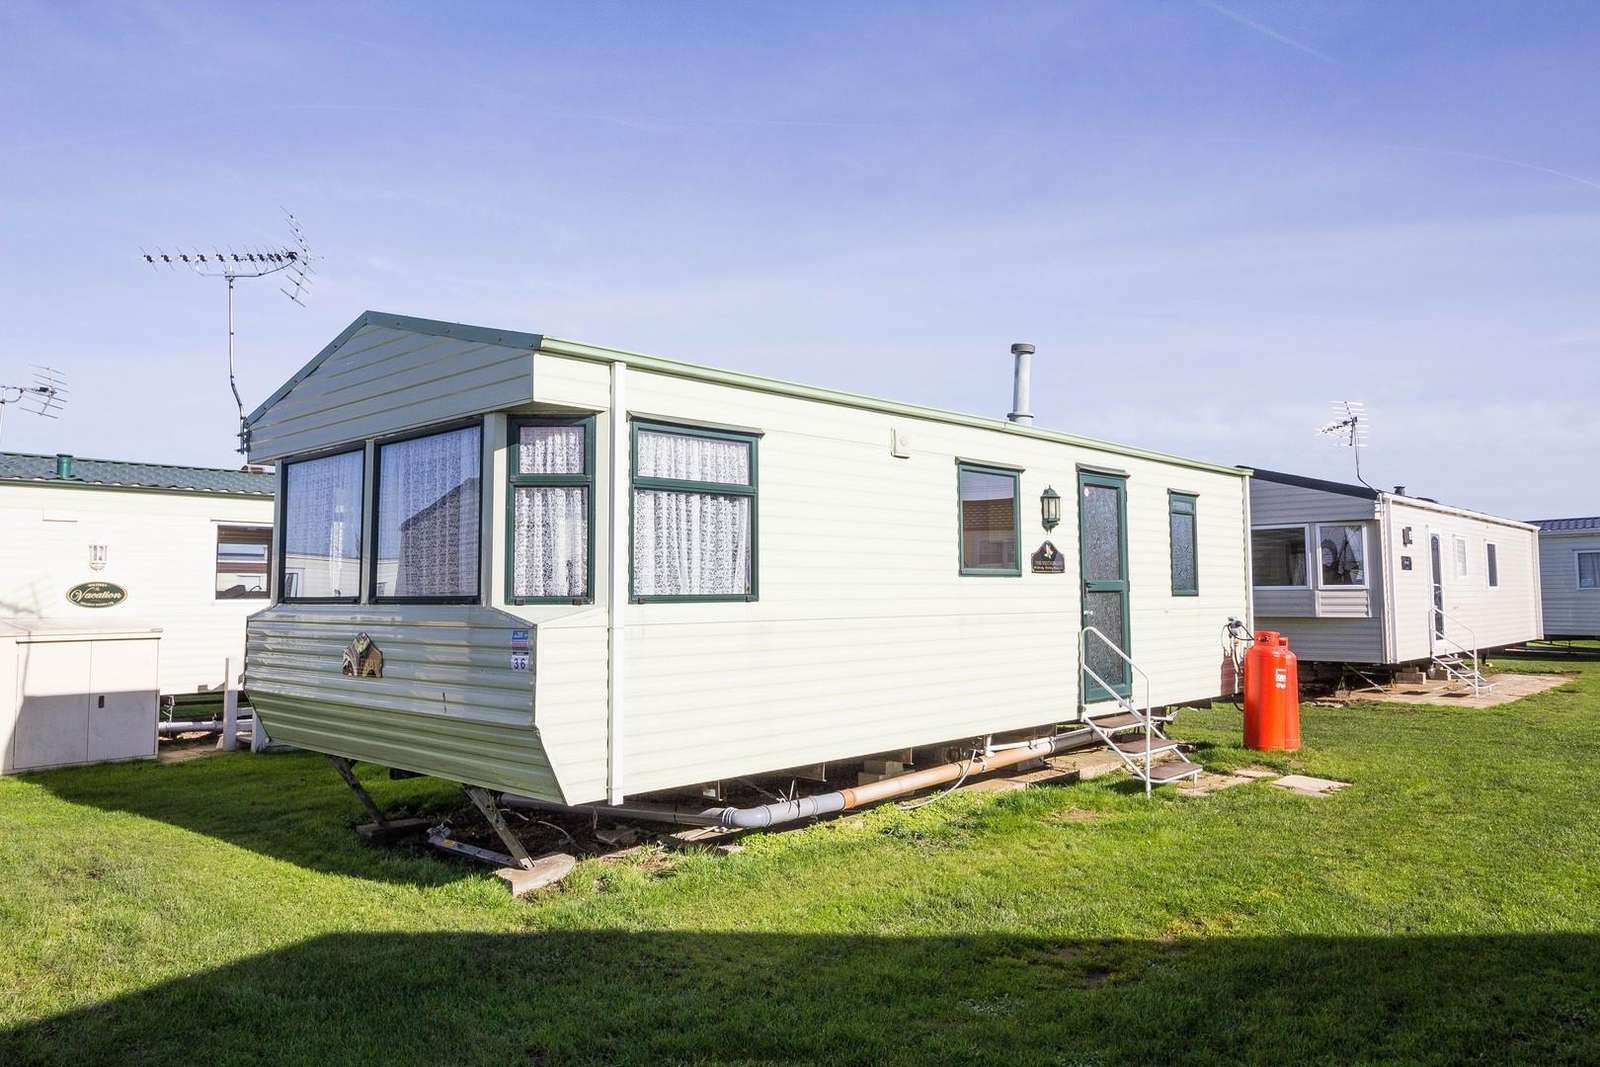 So many families have enjoyed a great break at Heacham Beach Holiday Park